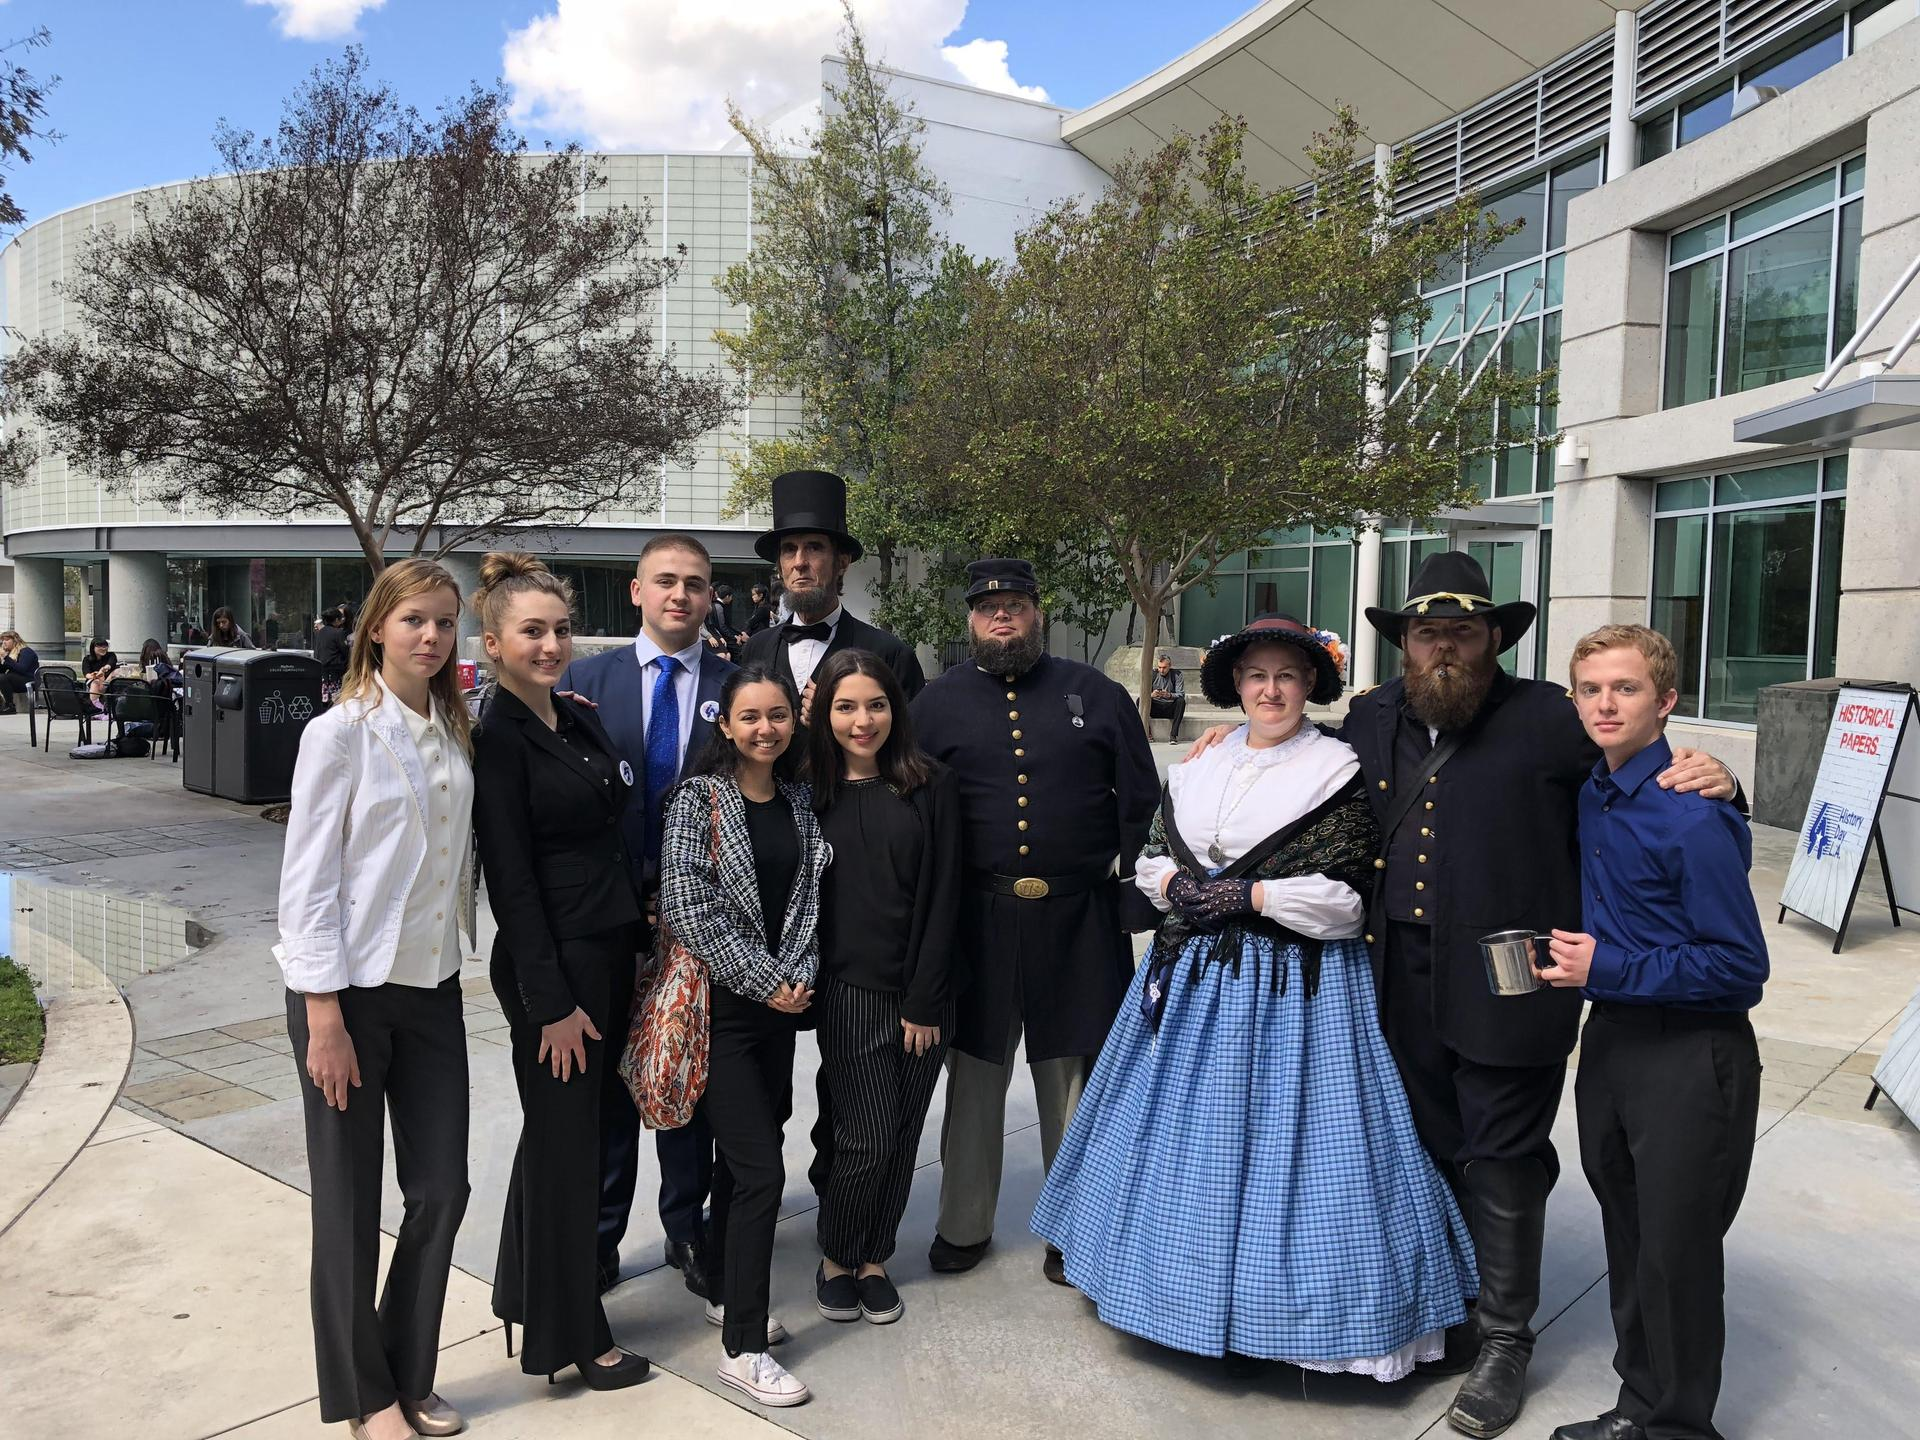 Group of students with people dressed in historical custom